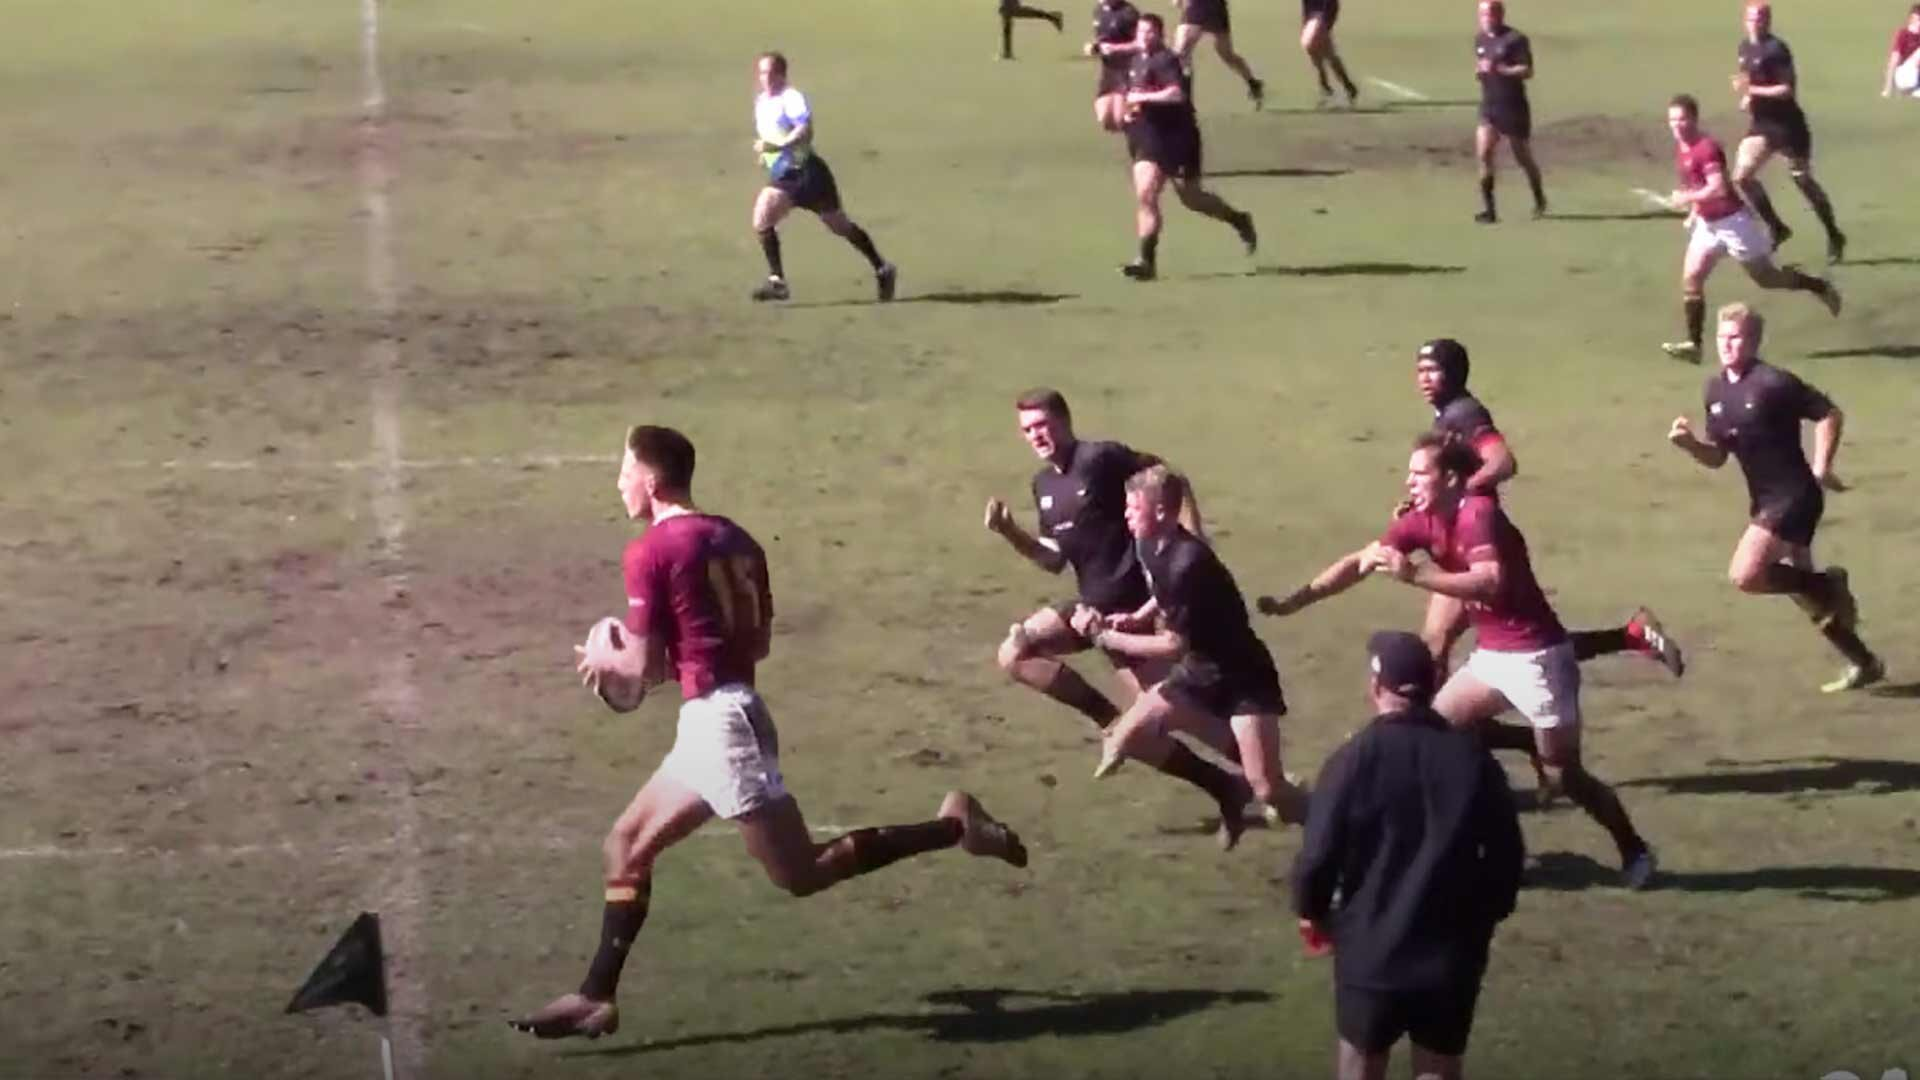 Rugby fans are stunned at the freakish speed of South African rugby schoolboy in new video